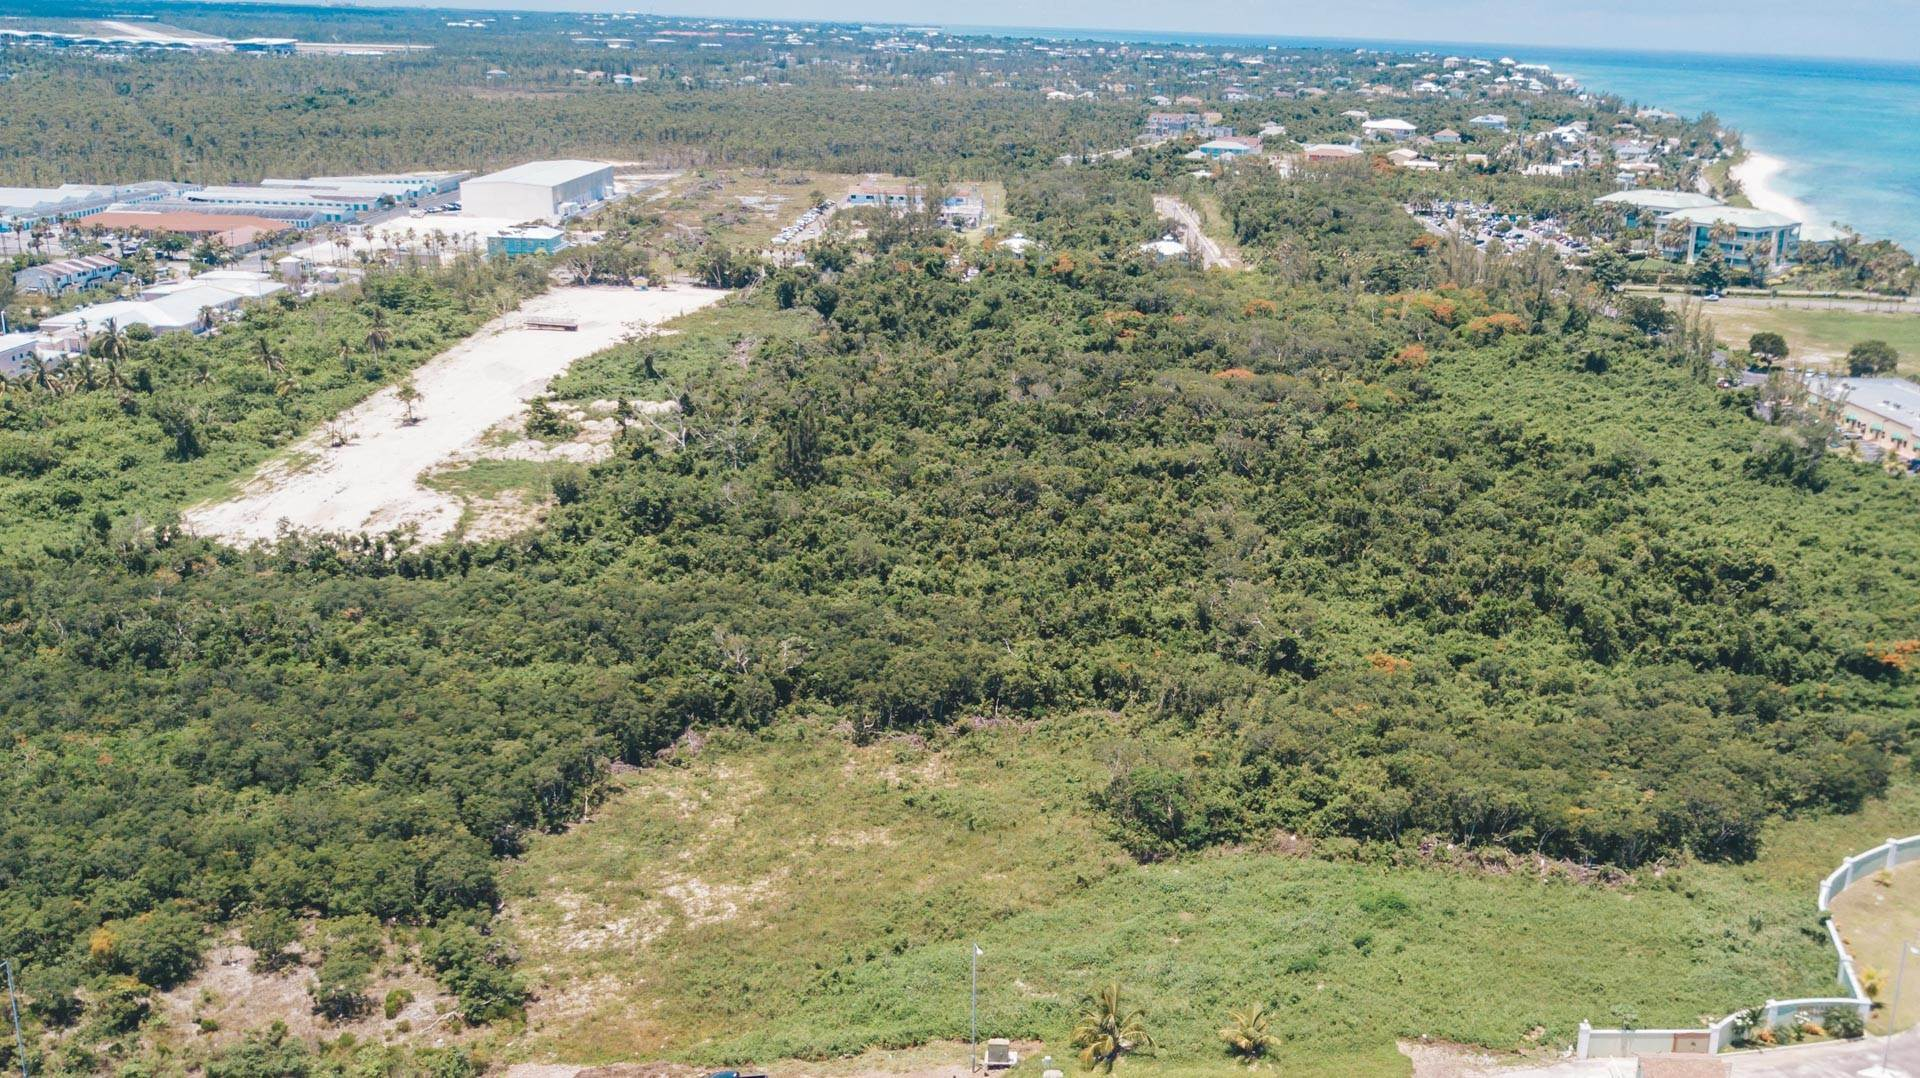 2. Terreno por un Venta en Lot 13 West Lake Plantation - MLS 35050 Nueva Providencia / Nassau, Bahamas